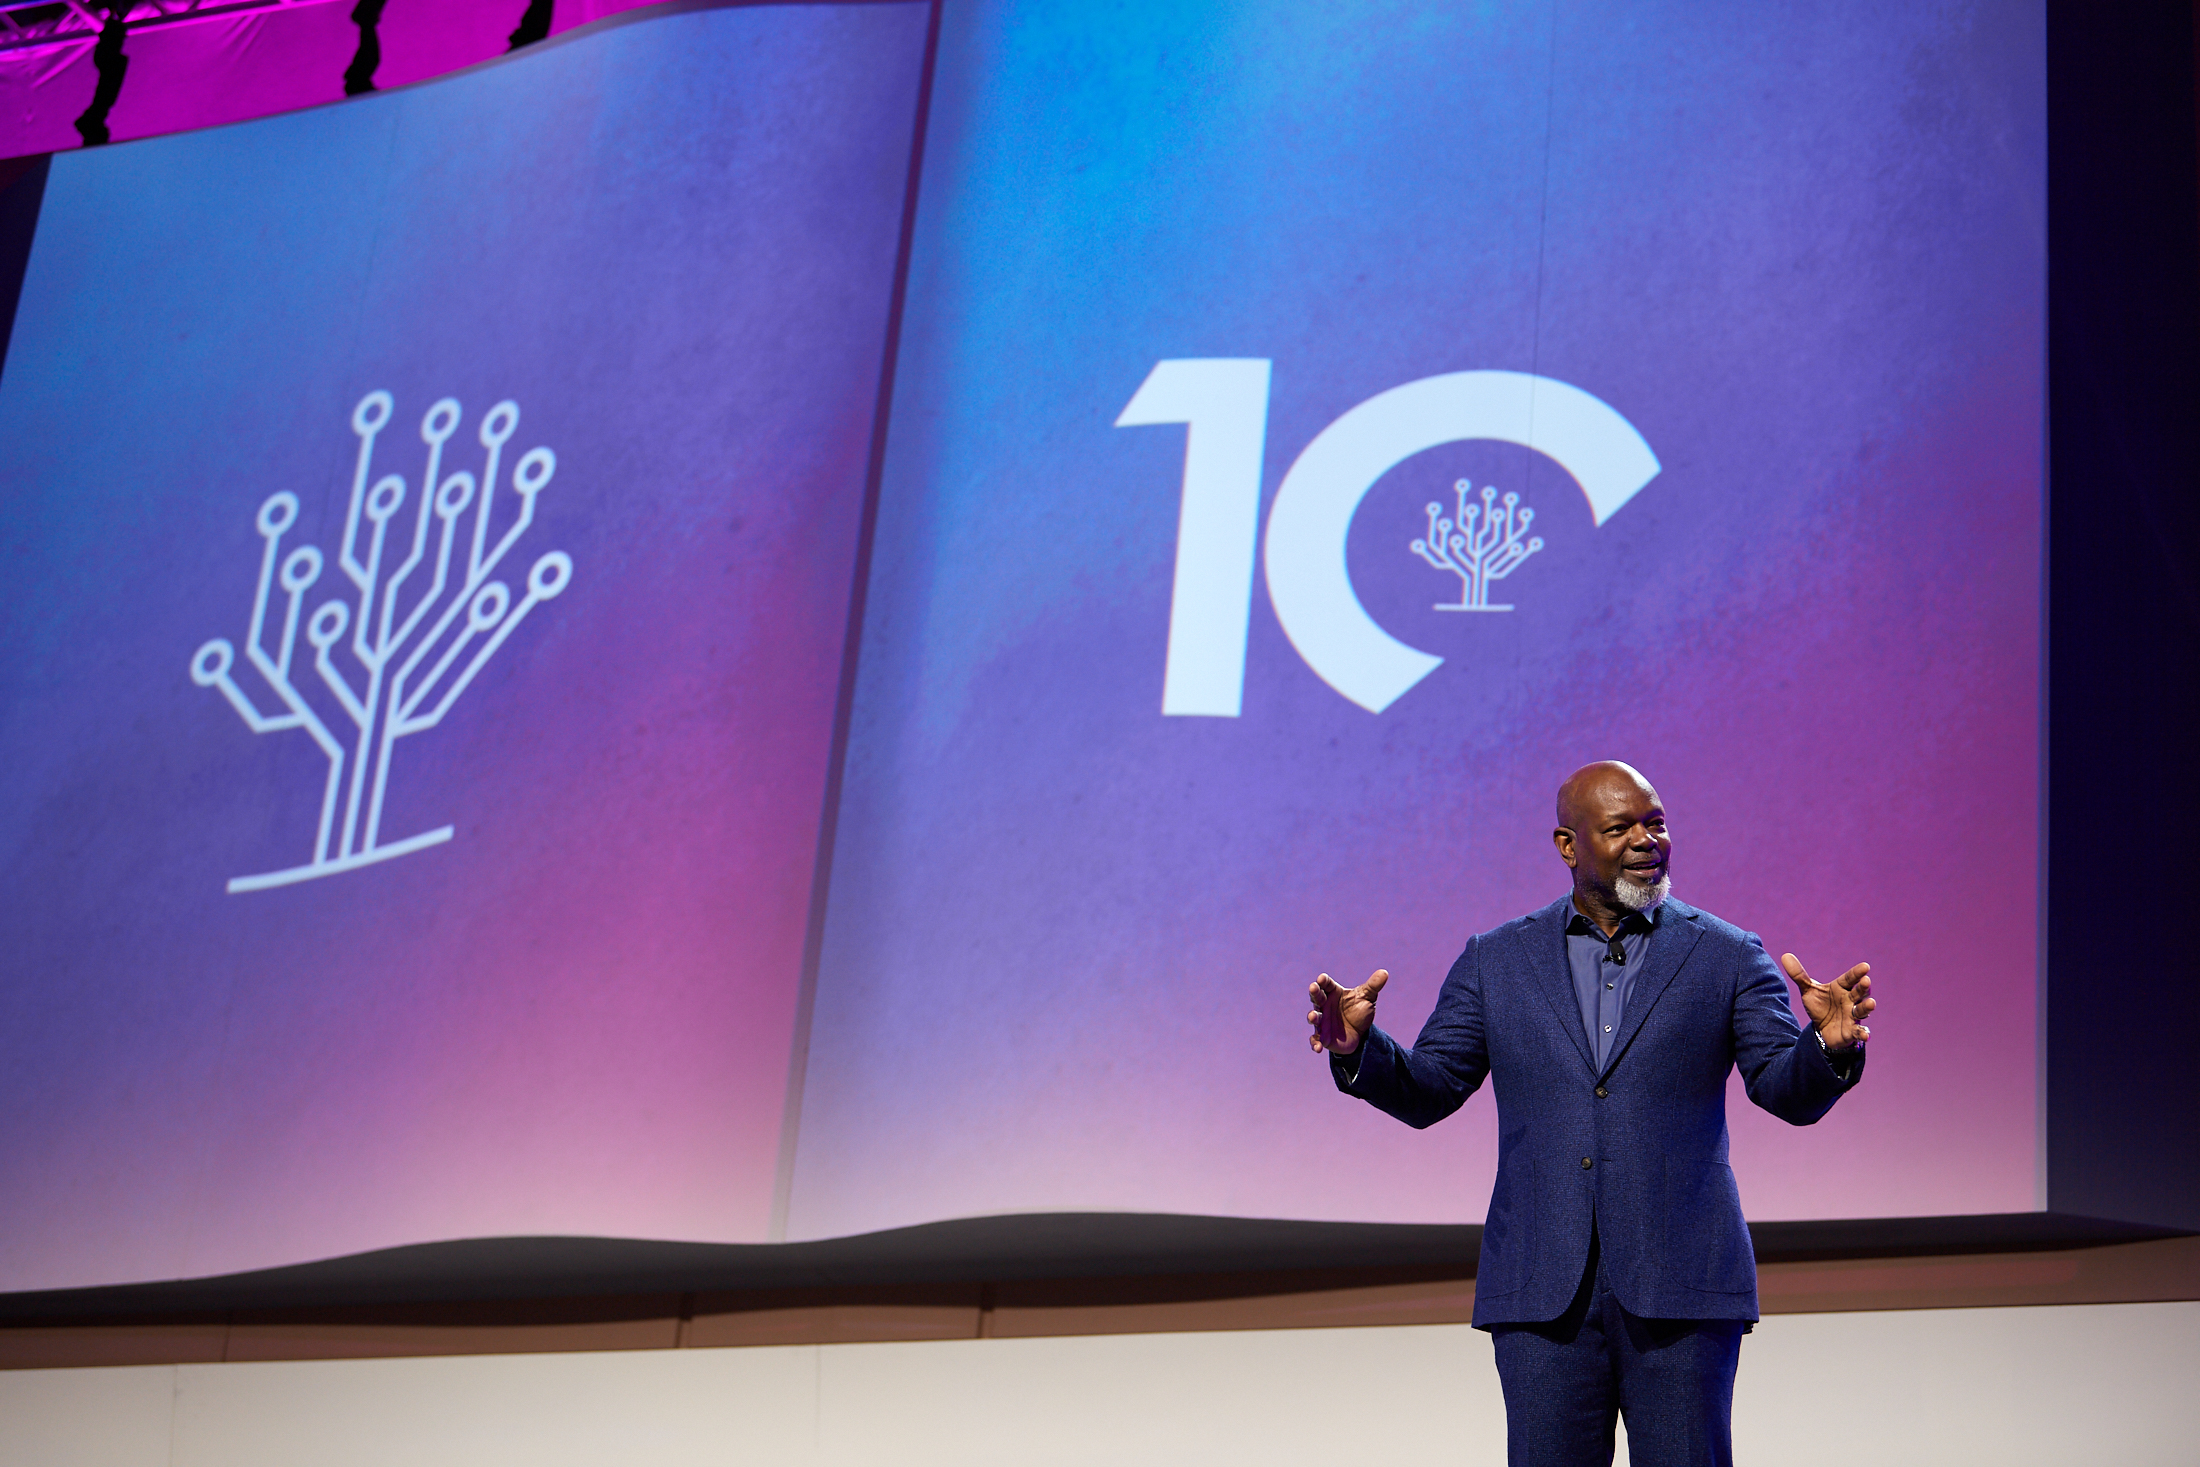 Emmitt Smith, NFL all-time running back and Super Bowl MVP, keynotes RootsTech 2020 Salt Lake.